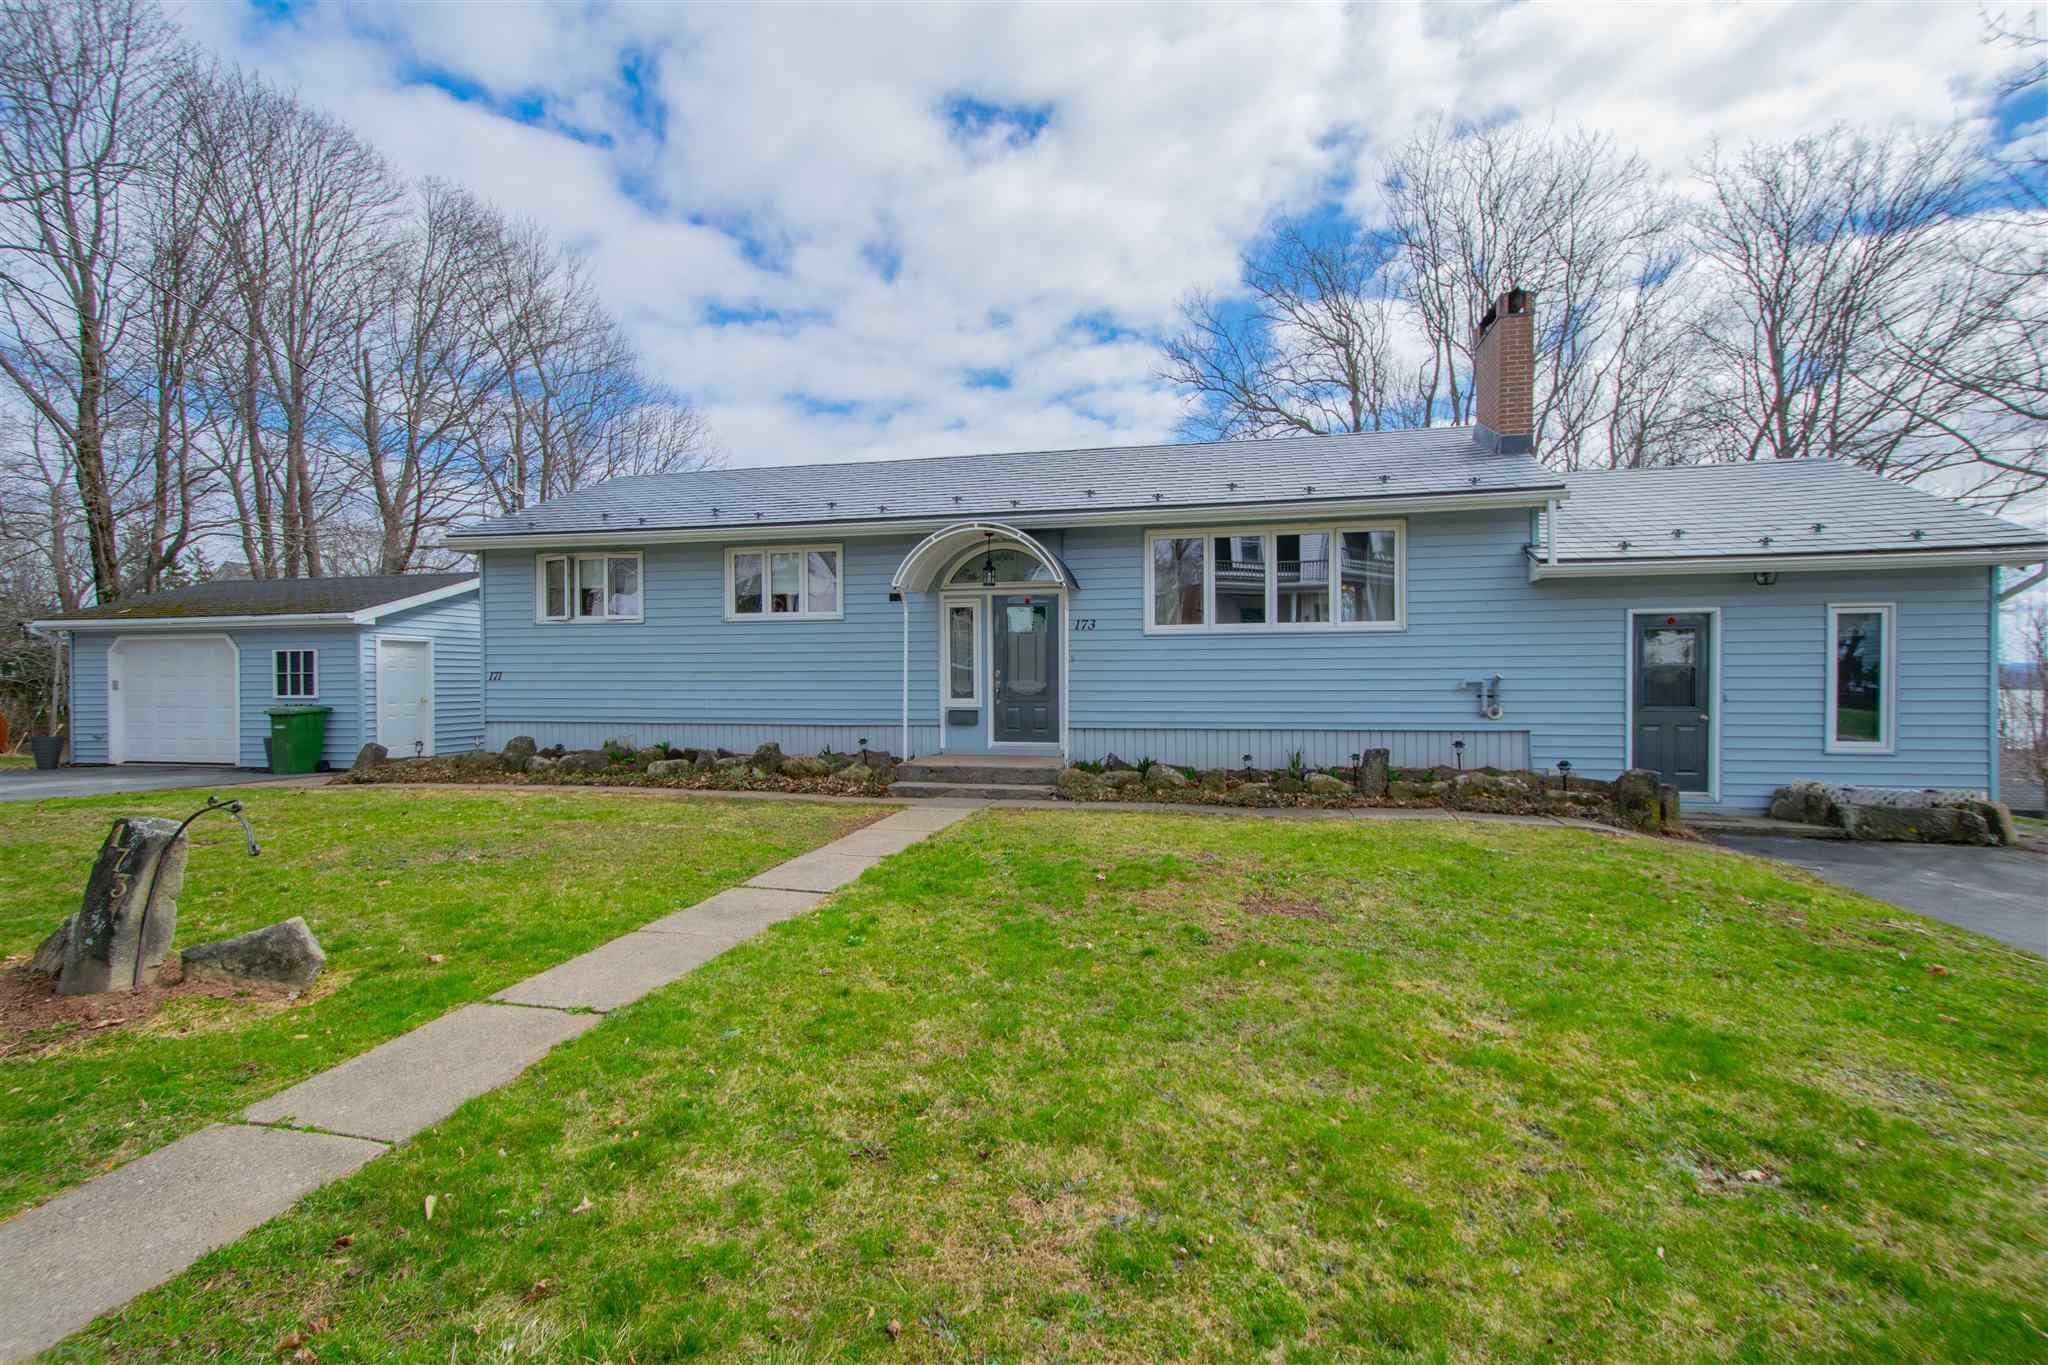 Main Photo: 173 Faulkland Street in Pictou: 107-Trenton,Westville,Pictou Residential for sale (Northern Region)  : MLS®# 202108667